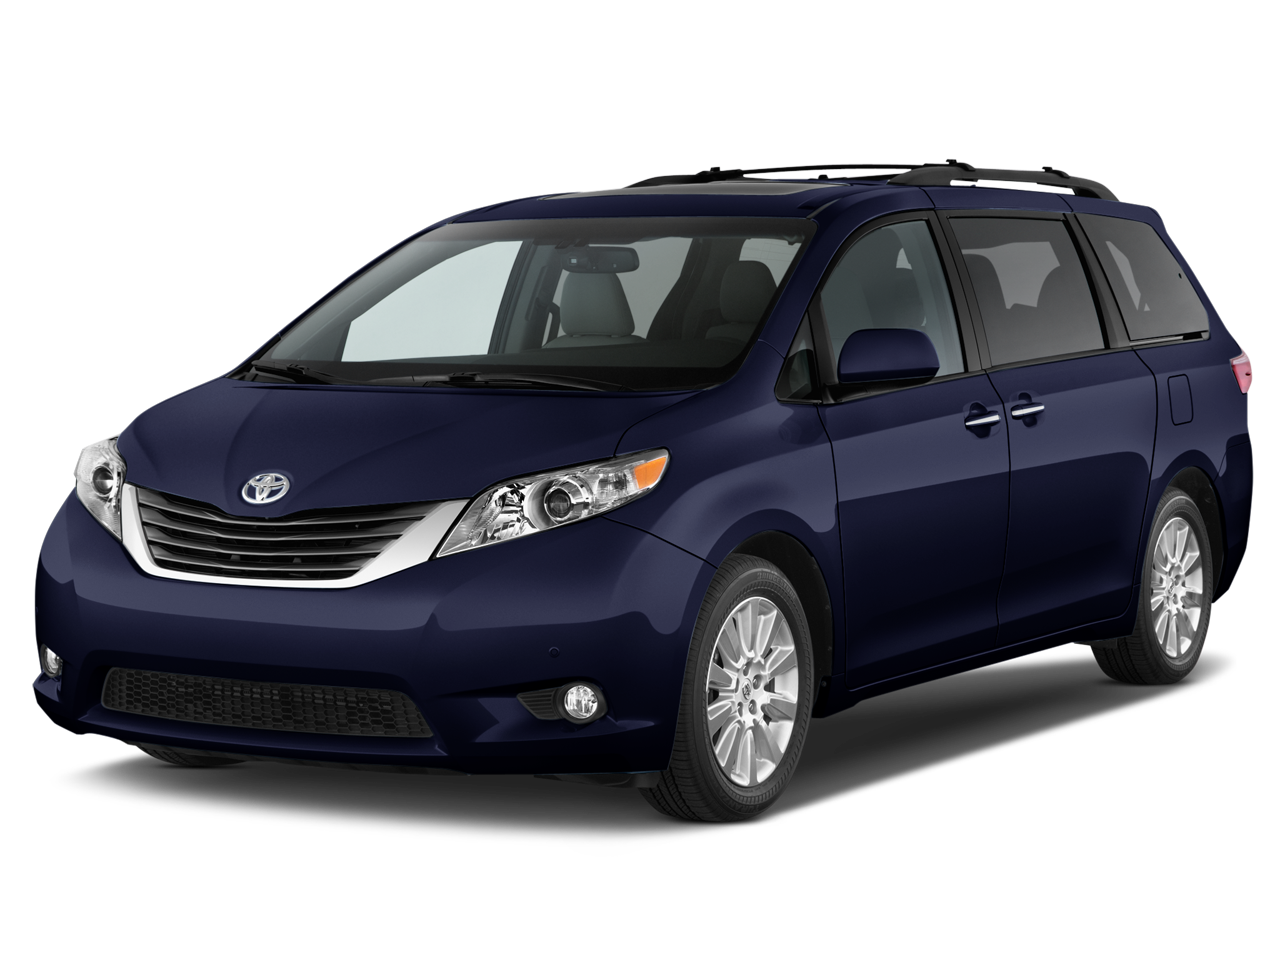 new 2017 toyota sienna xle near morristown nj toyota of morristown. Black Bedroom Furniture Sets. Home Design Ideas